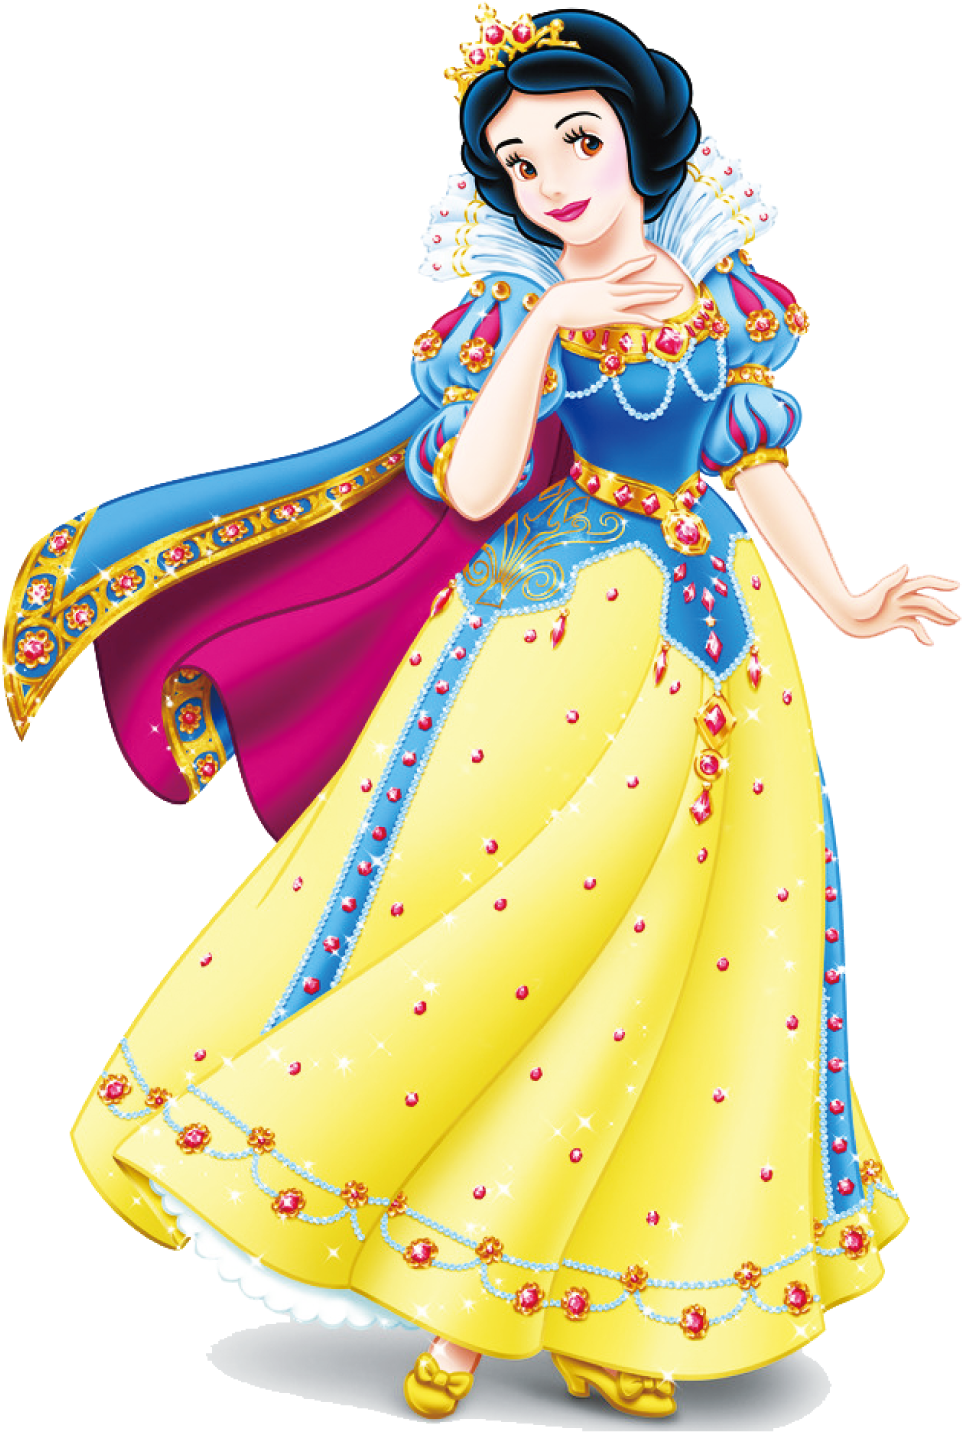 File:Snow white bejeweled 01.png